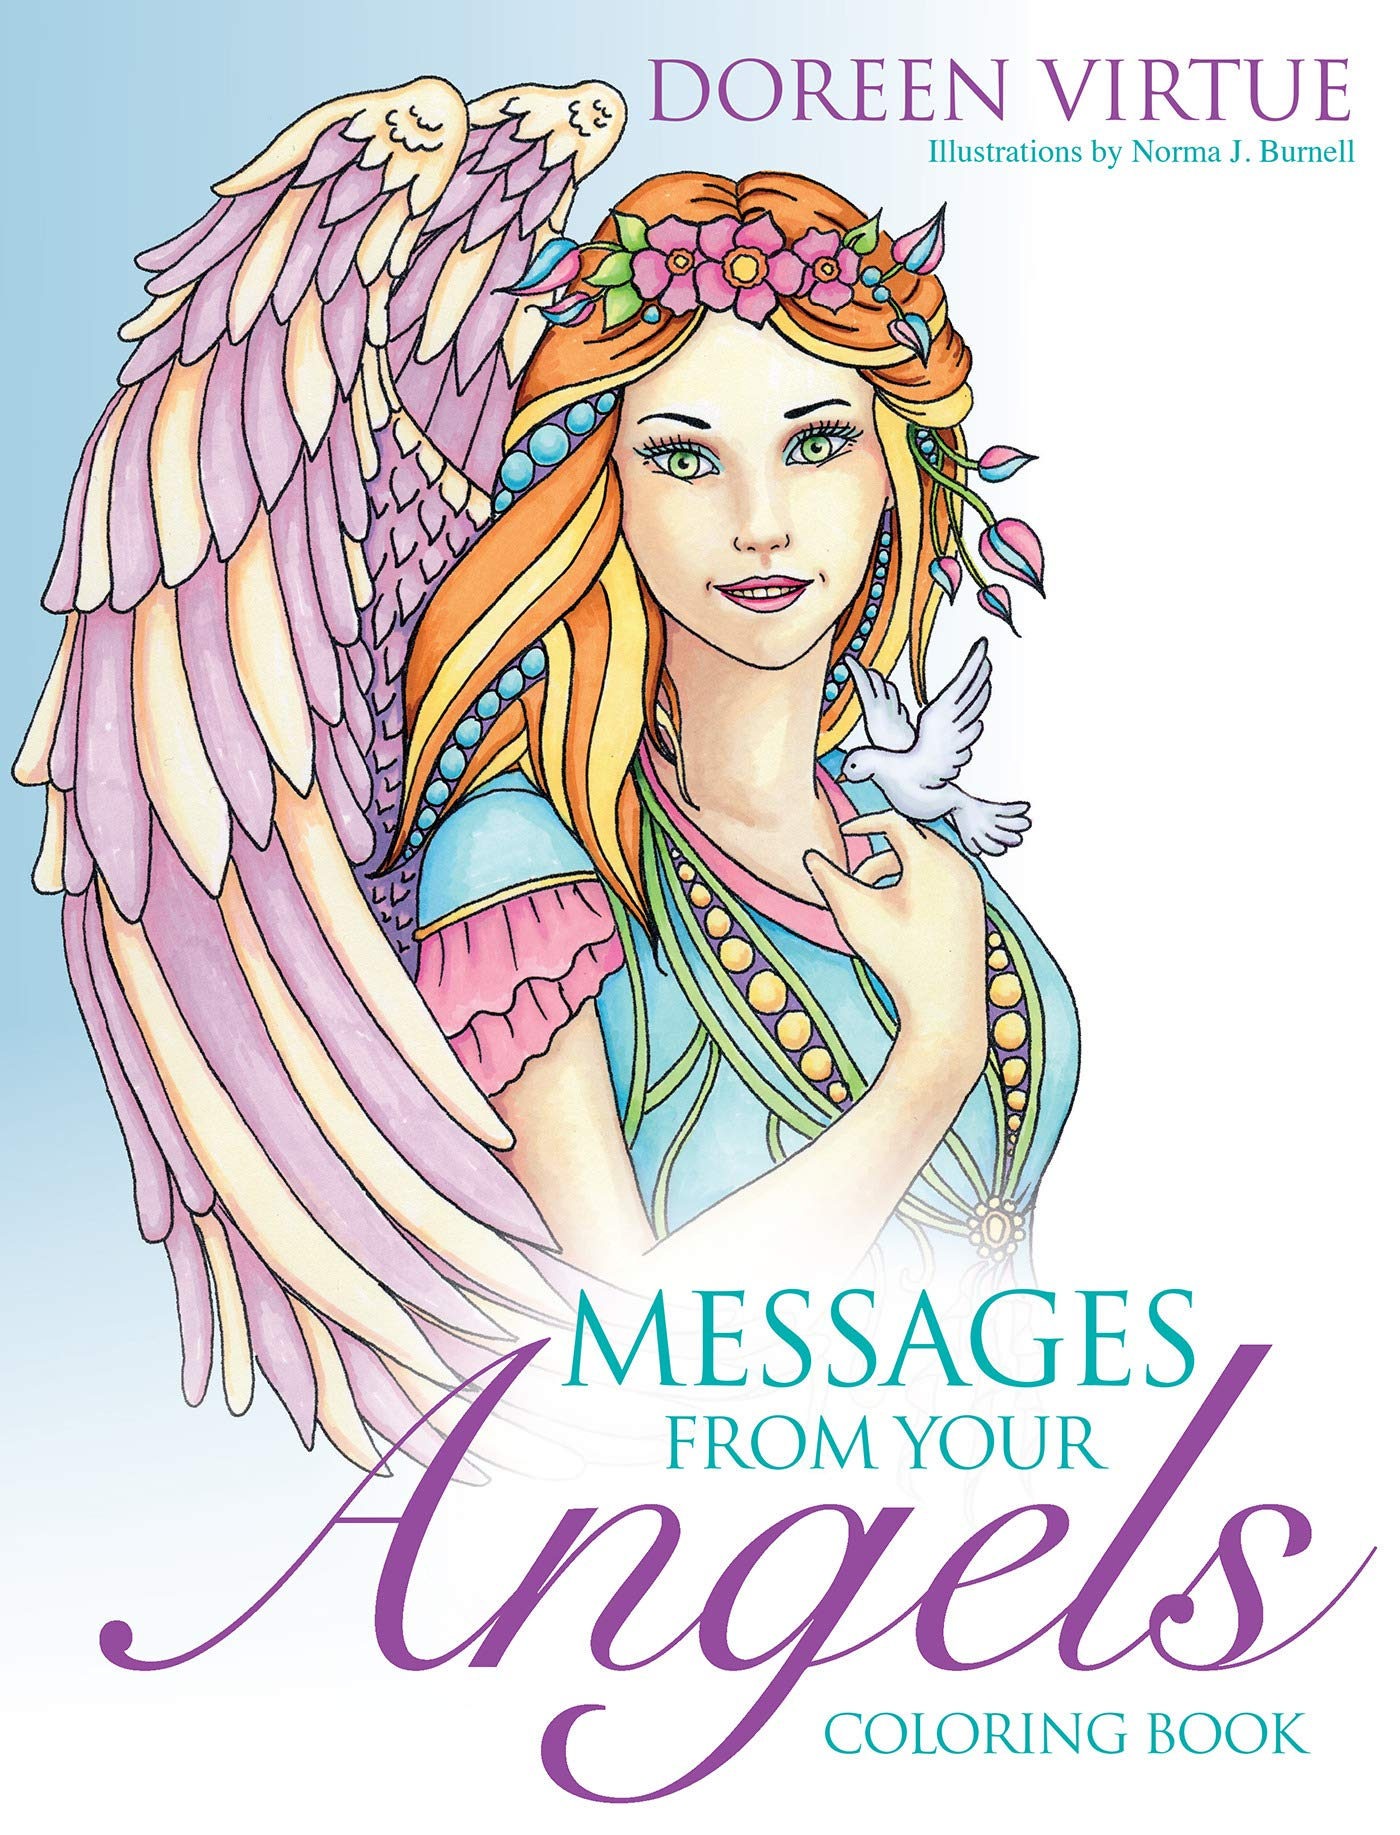 Amazon.com: Messages from Your Angels Coloring Book (9781401952037 ...